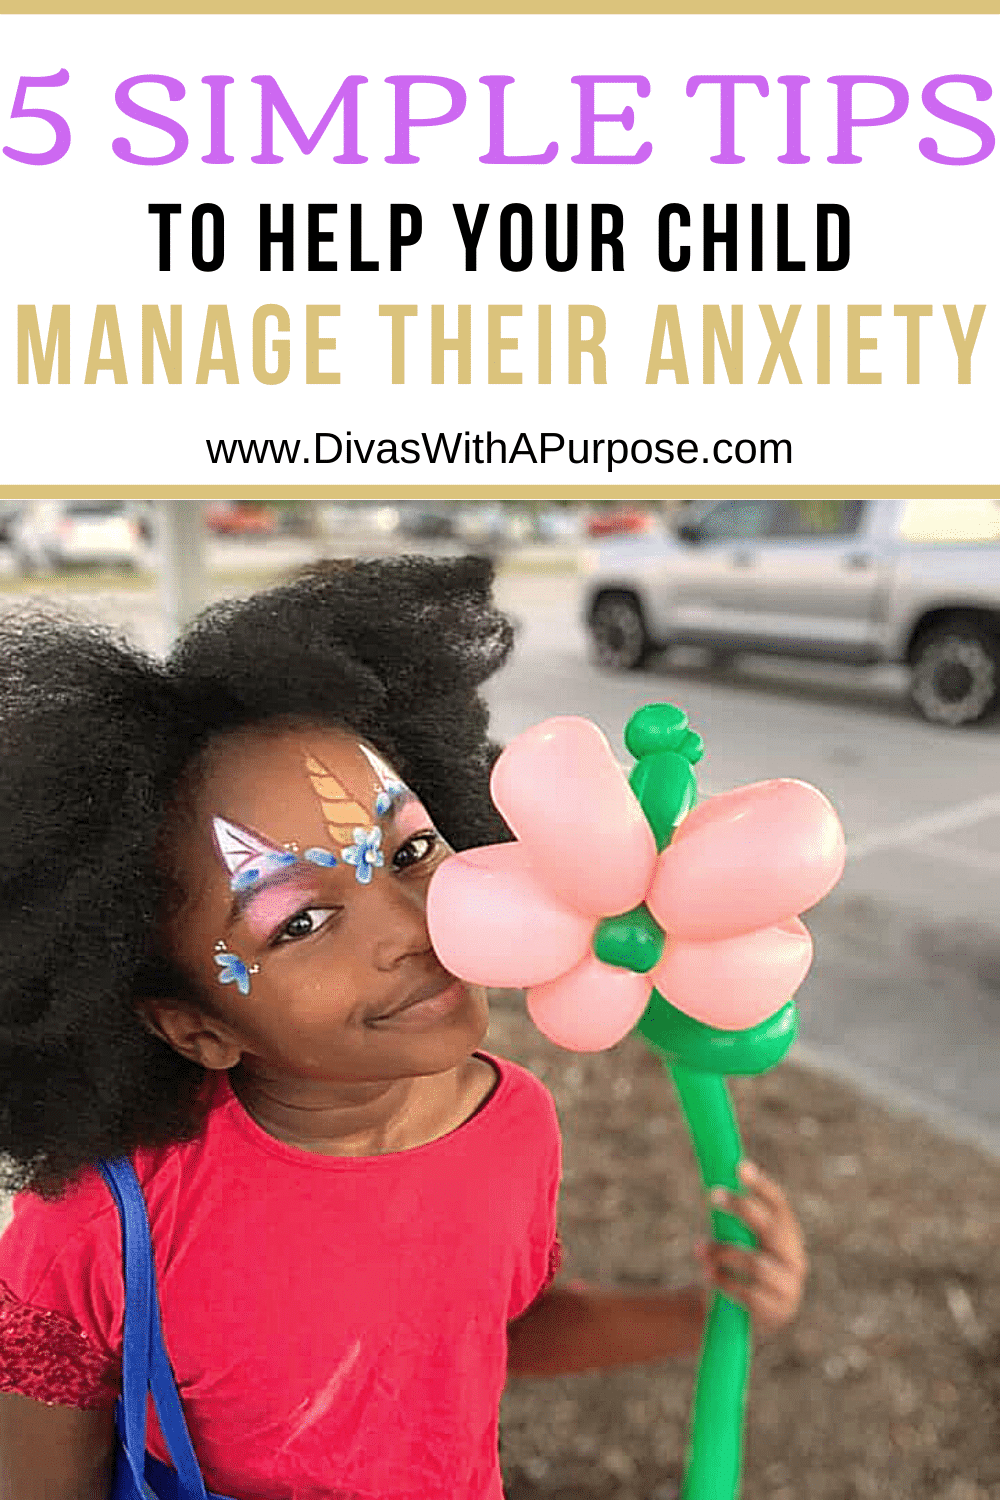 5 Simple Tips to Help Your Child Manage their Anxiety